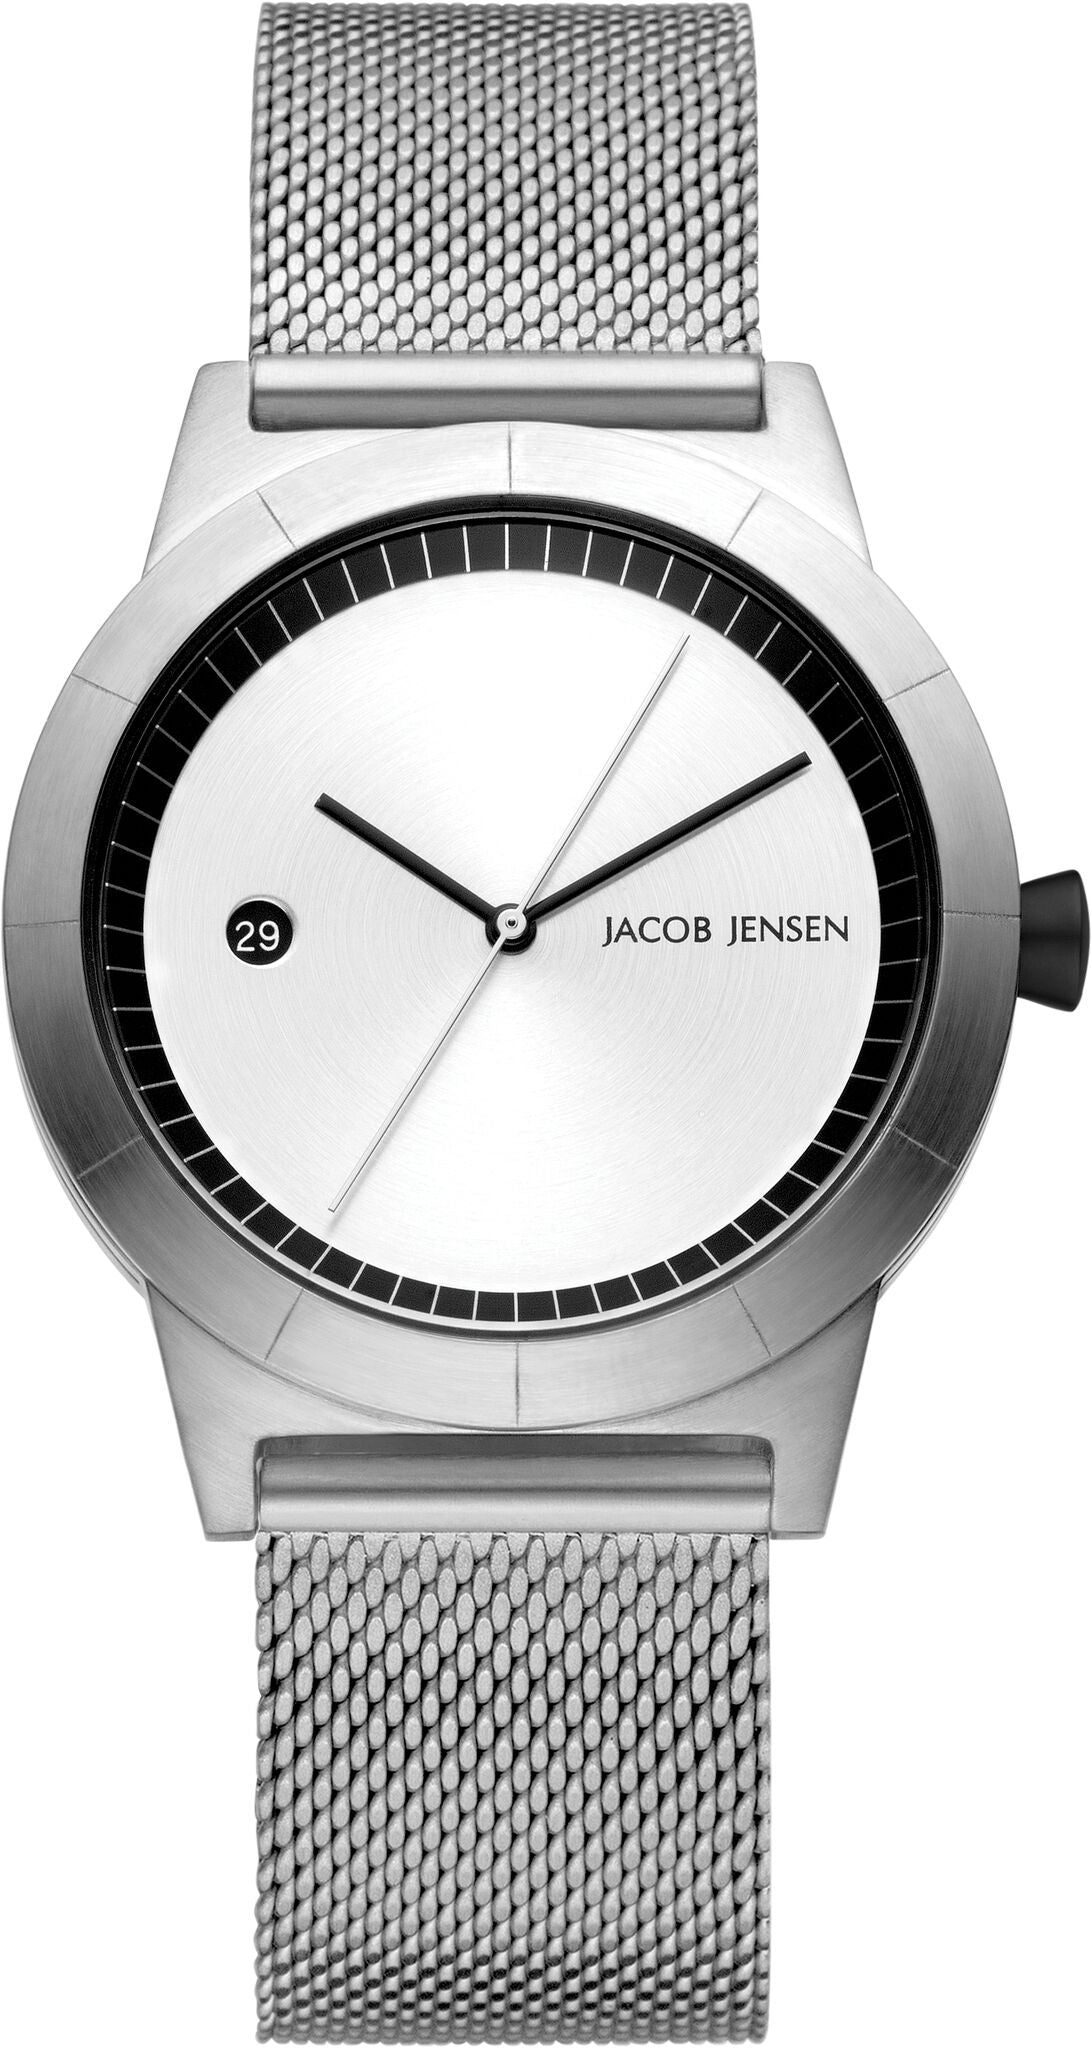 Ascent 152 Women's Watch, Ø36 mm